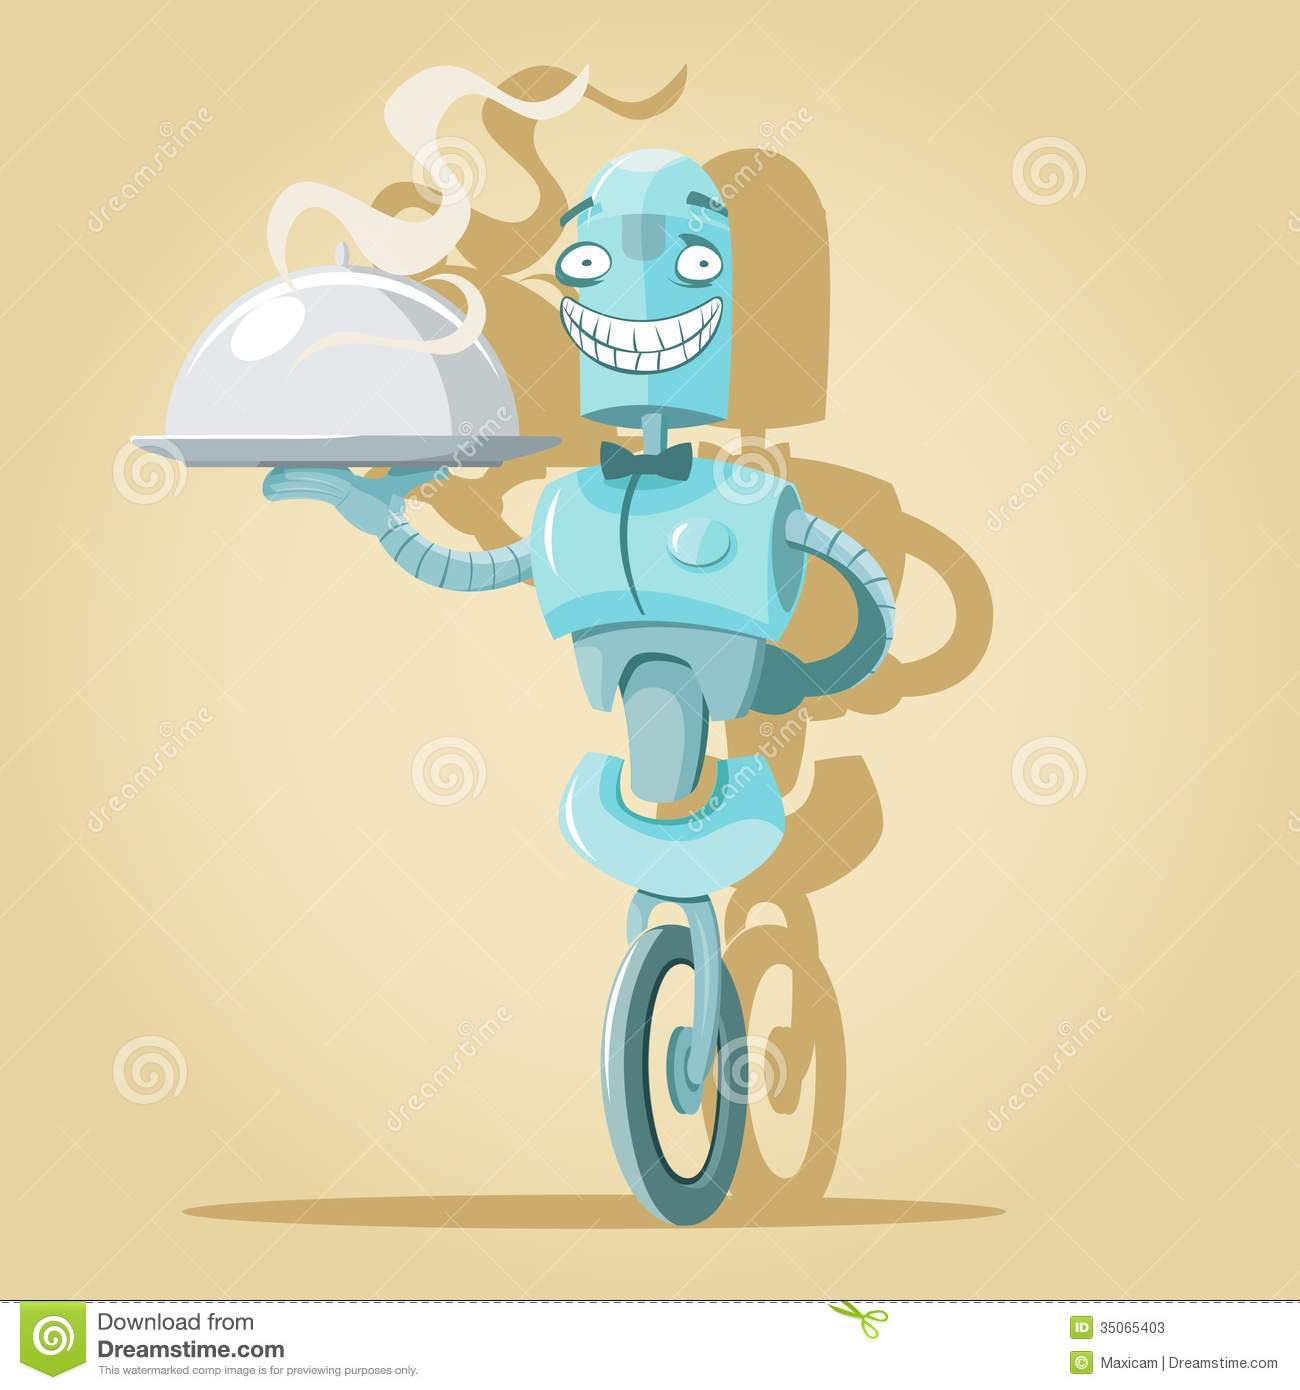 Vector illustration of funny cute Robot waiter holding tray with dish.